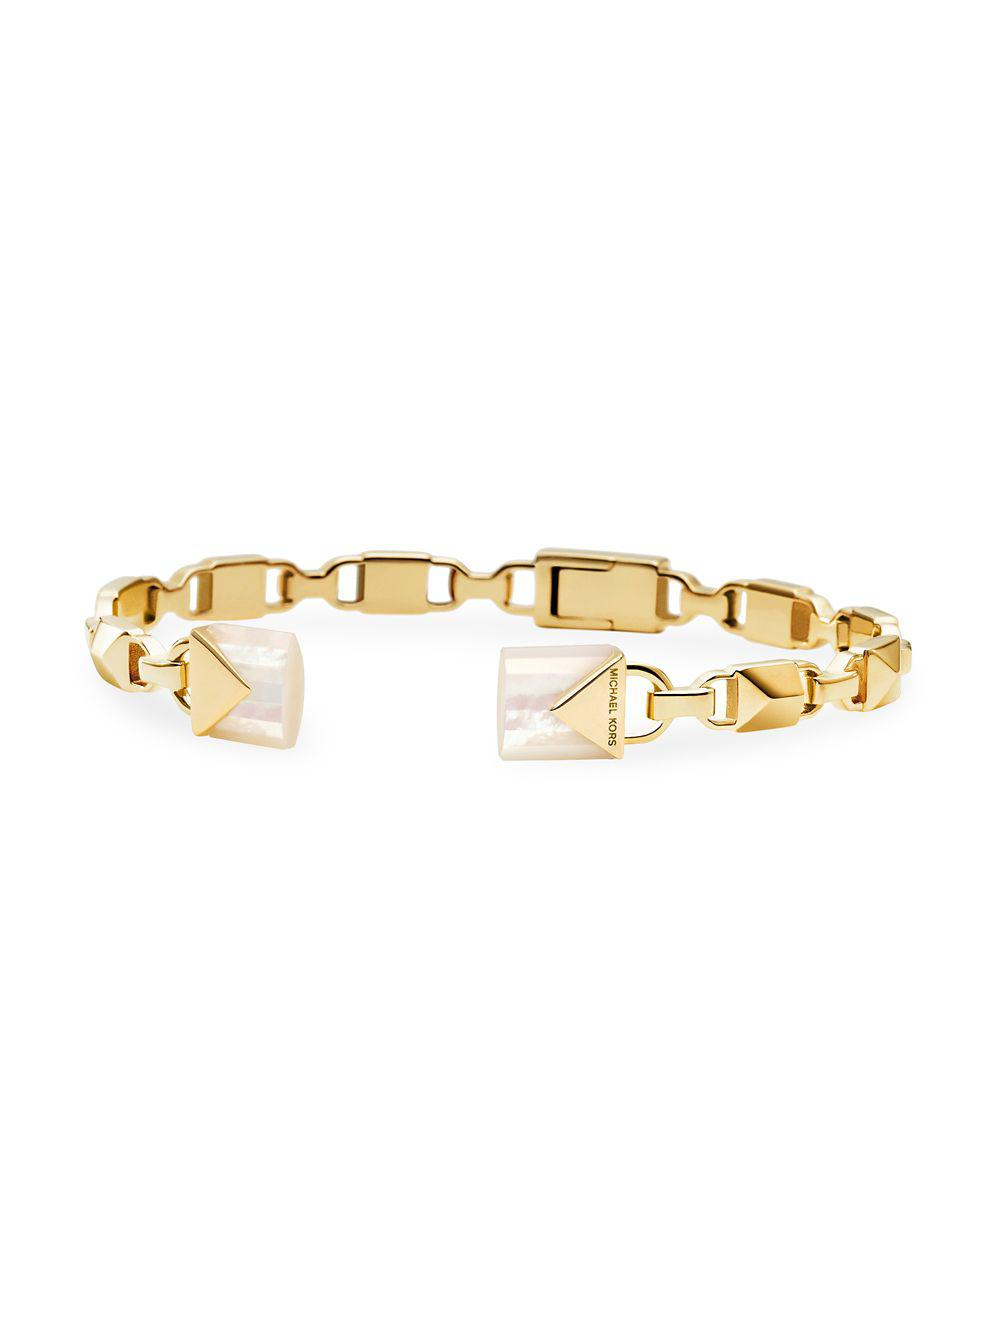 Mother Of Pearl Cuff Bracelet View Fullscreen